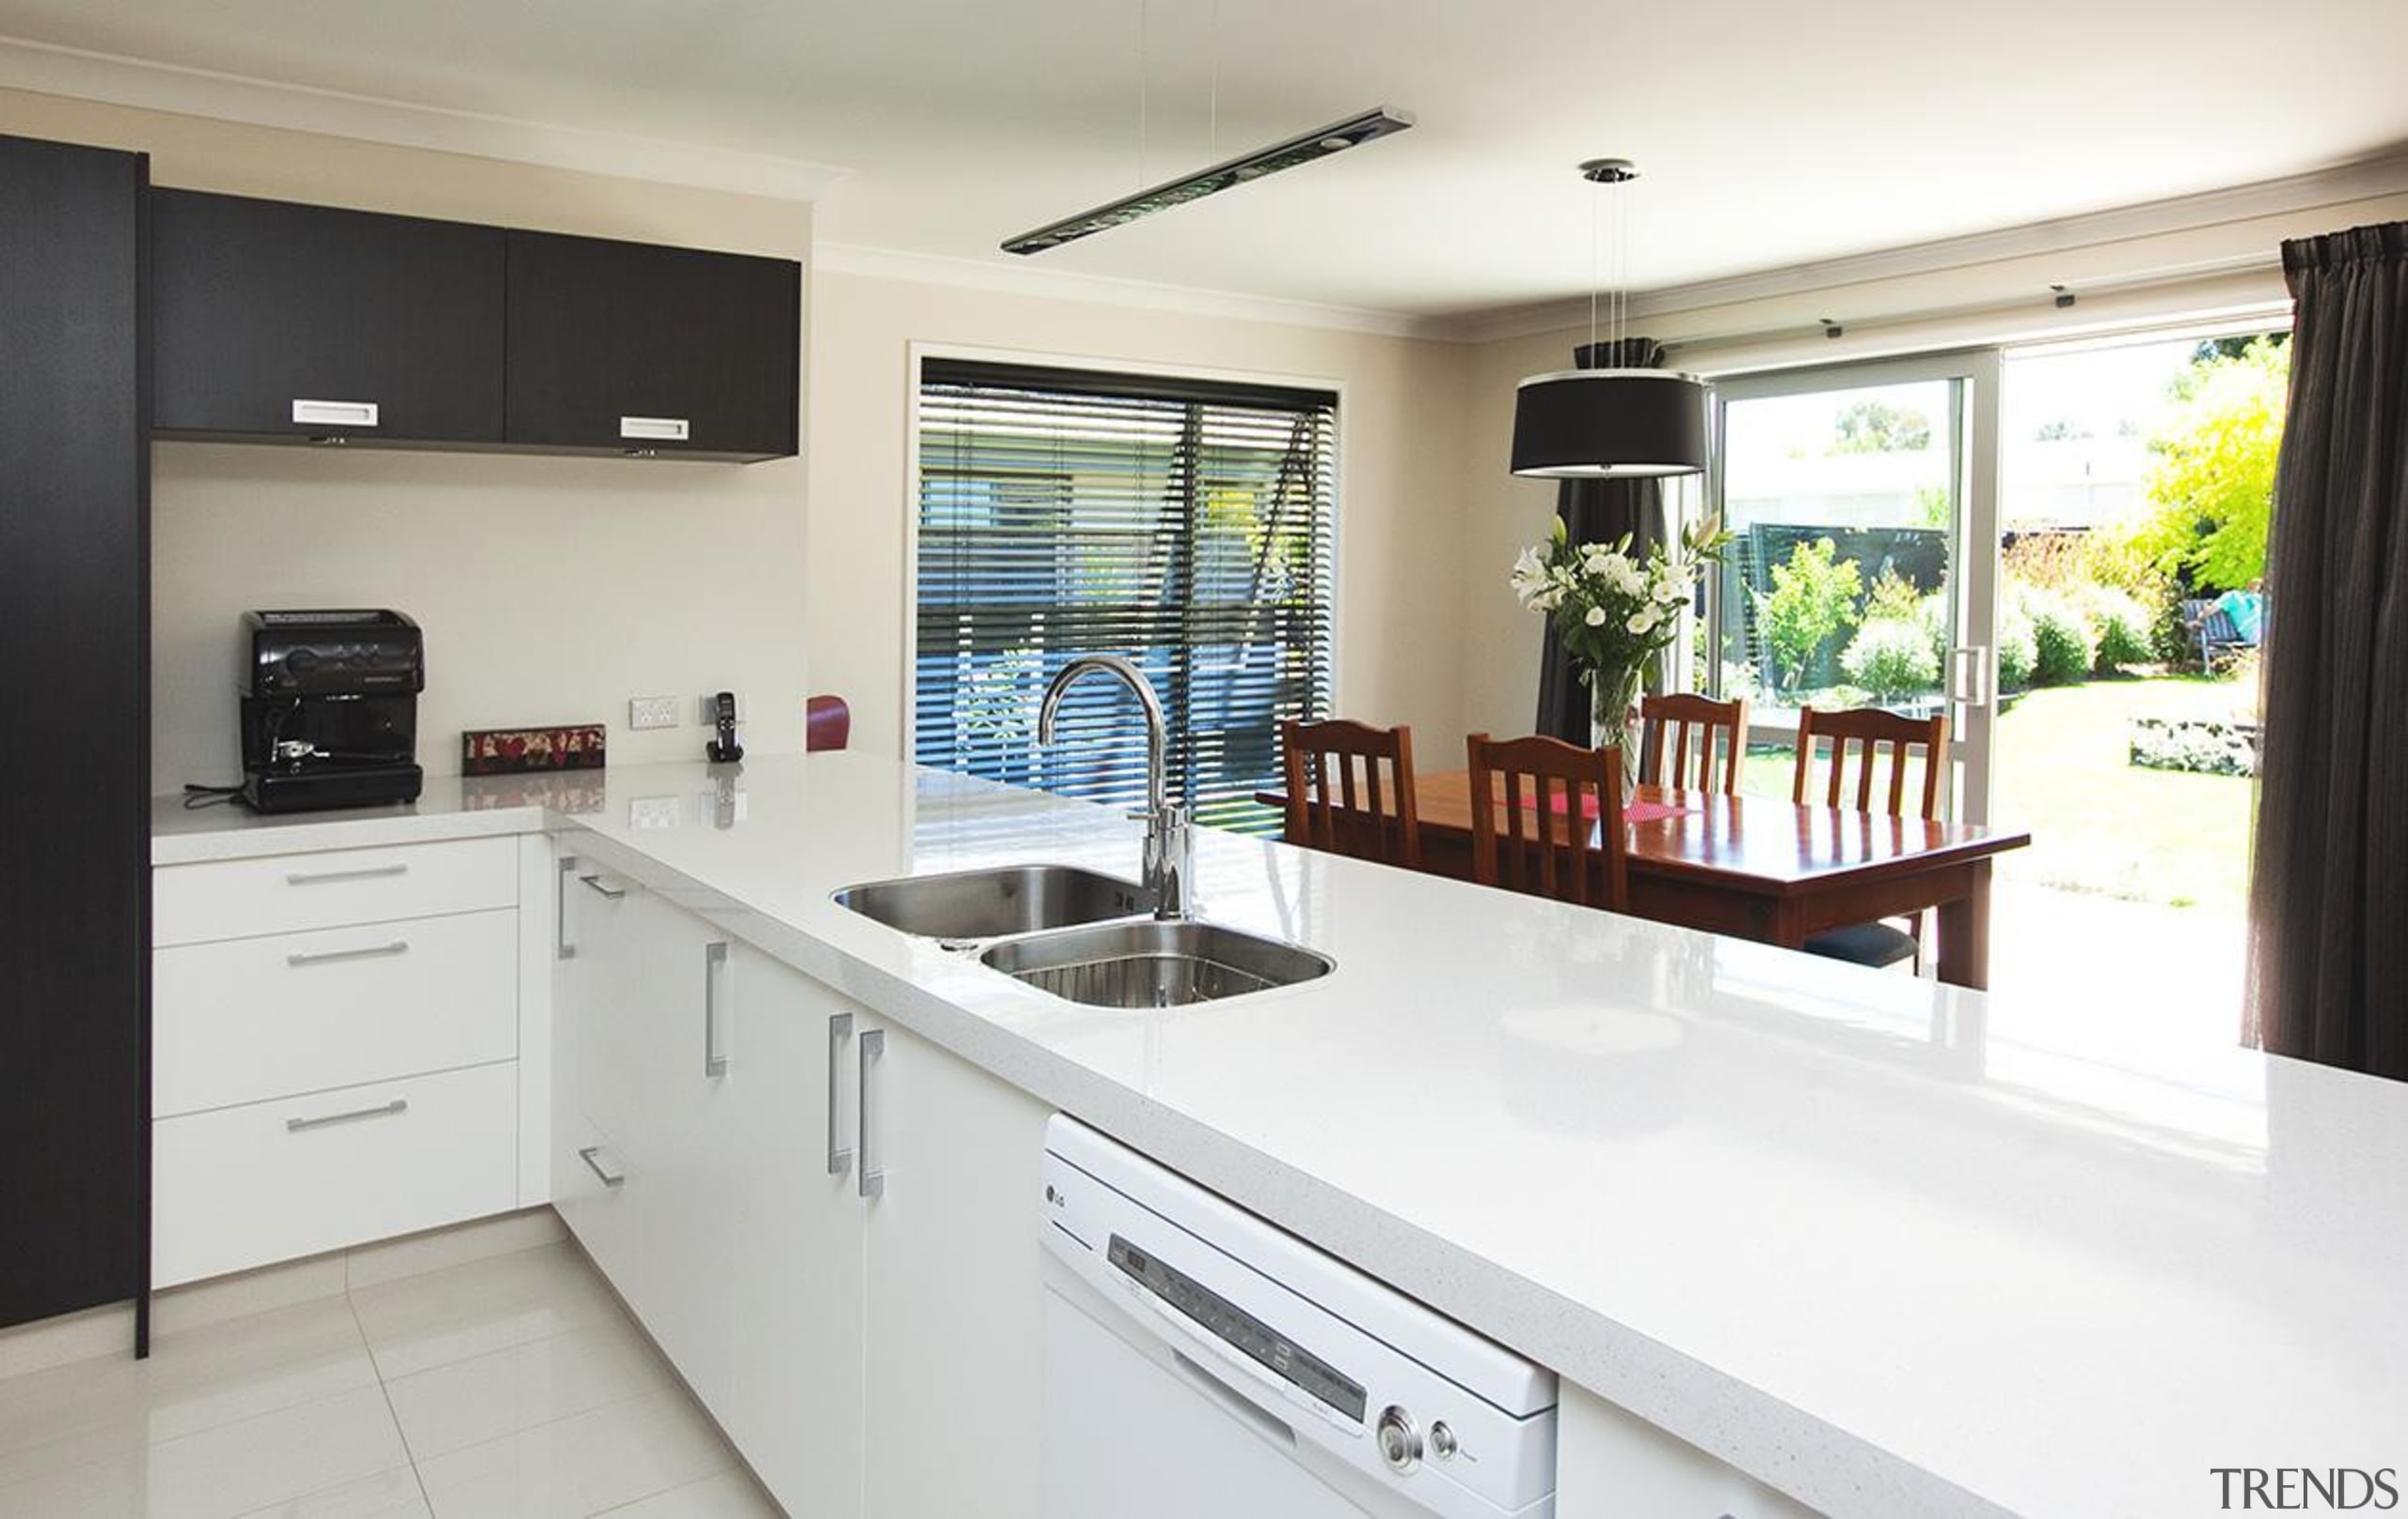 For more information, please visit www.gjgardner.co.nz countertop, cuisine classique, kitchen, property, real estate, white